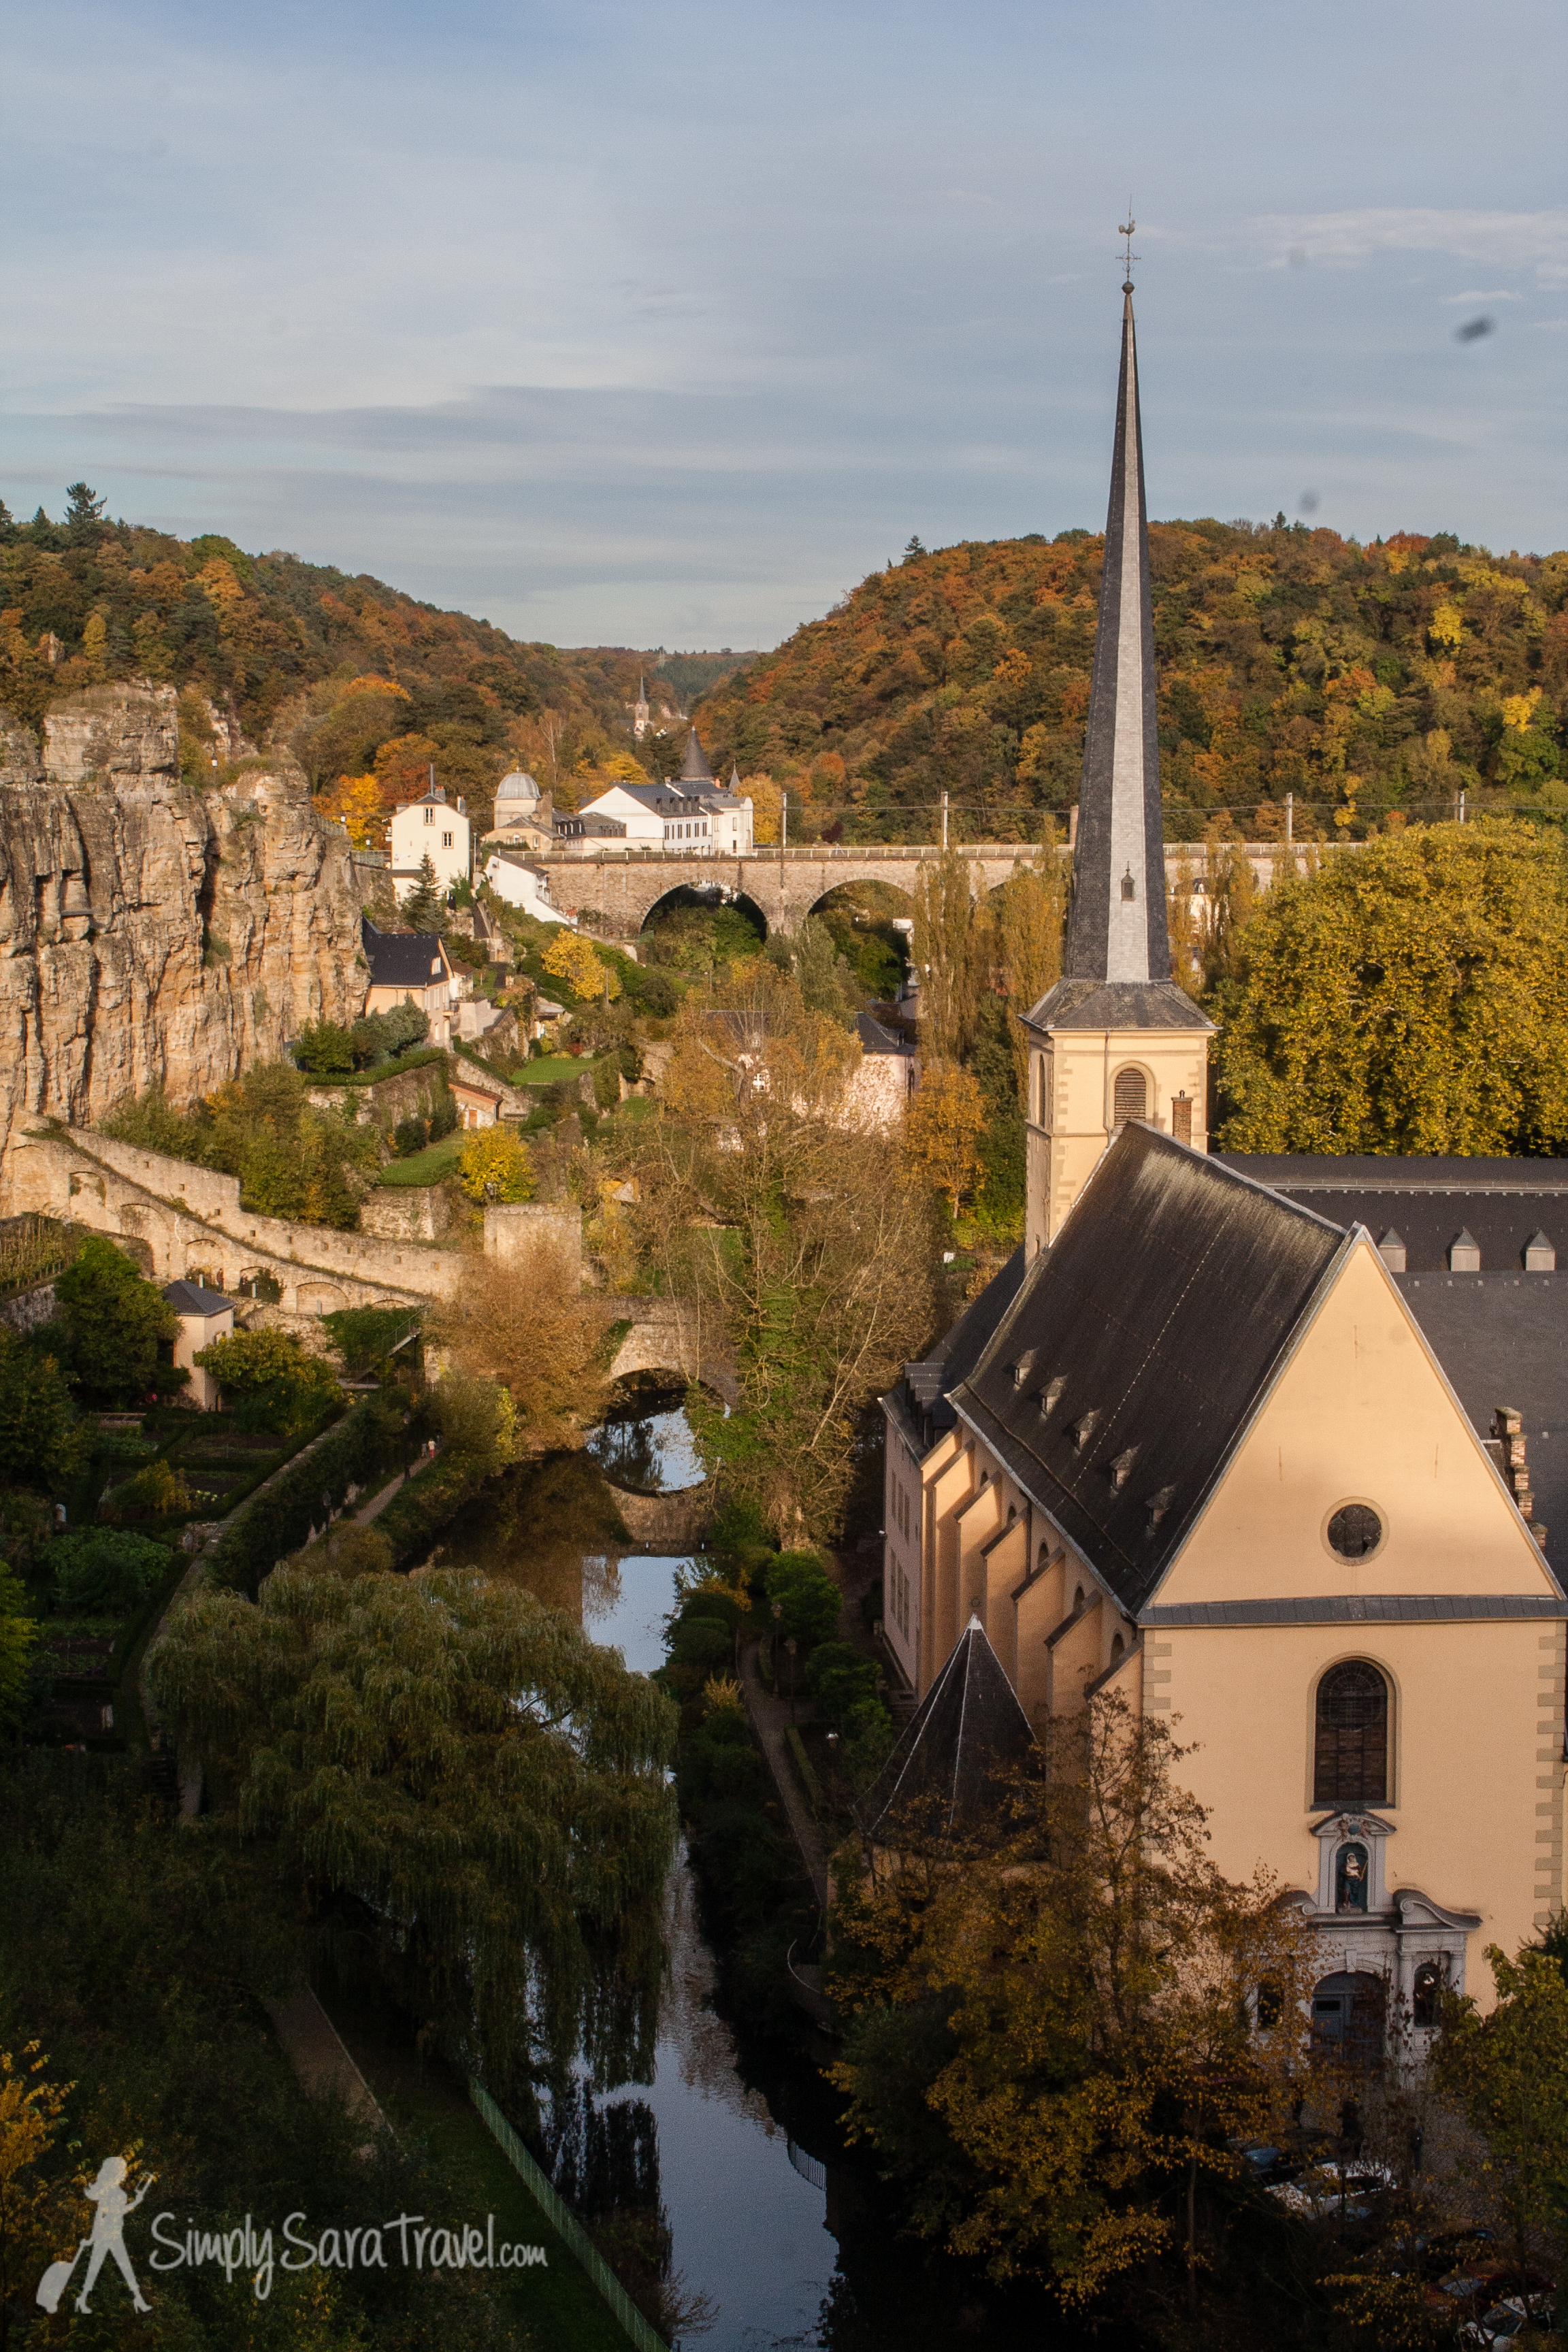 Luxembourg City in autumn (October 2013)